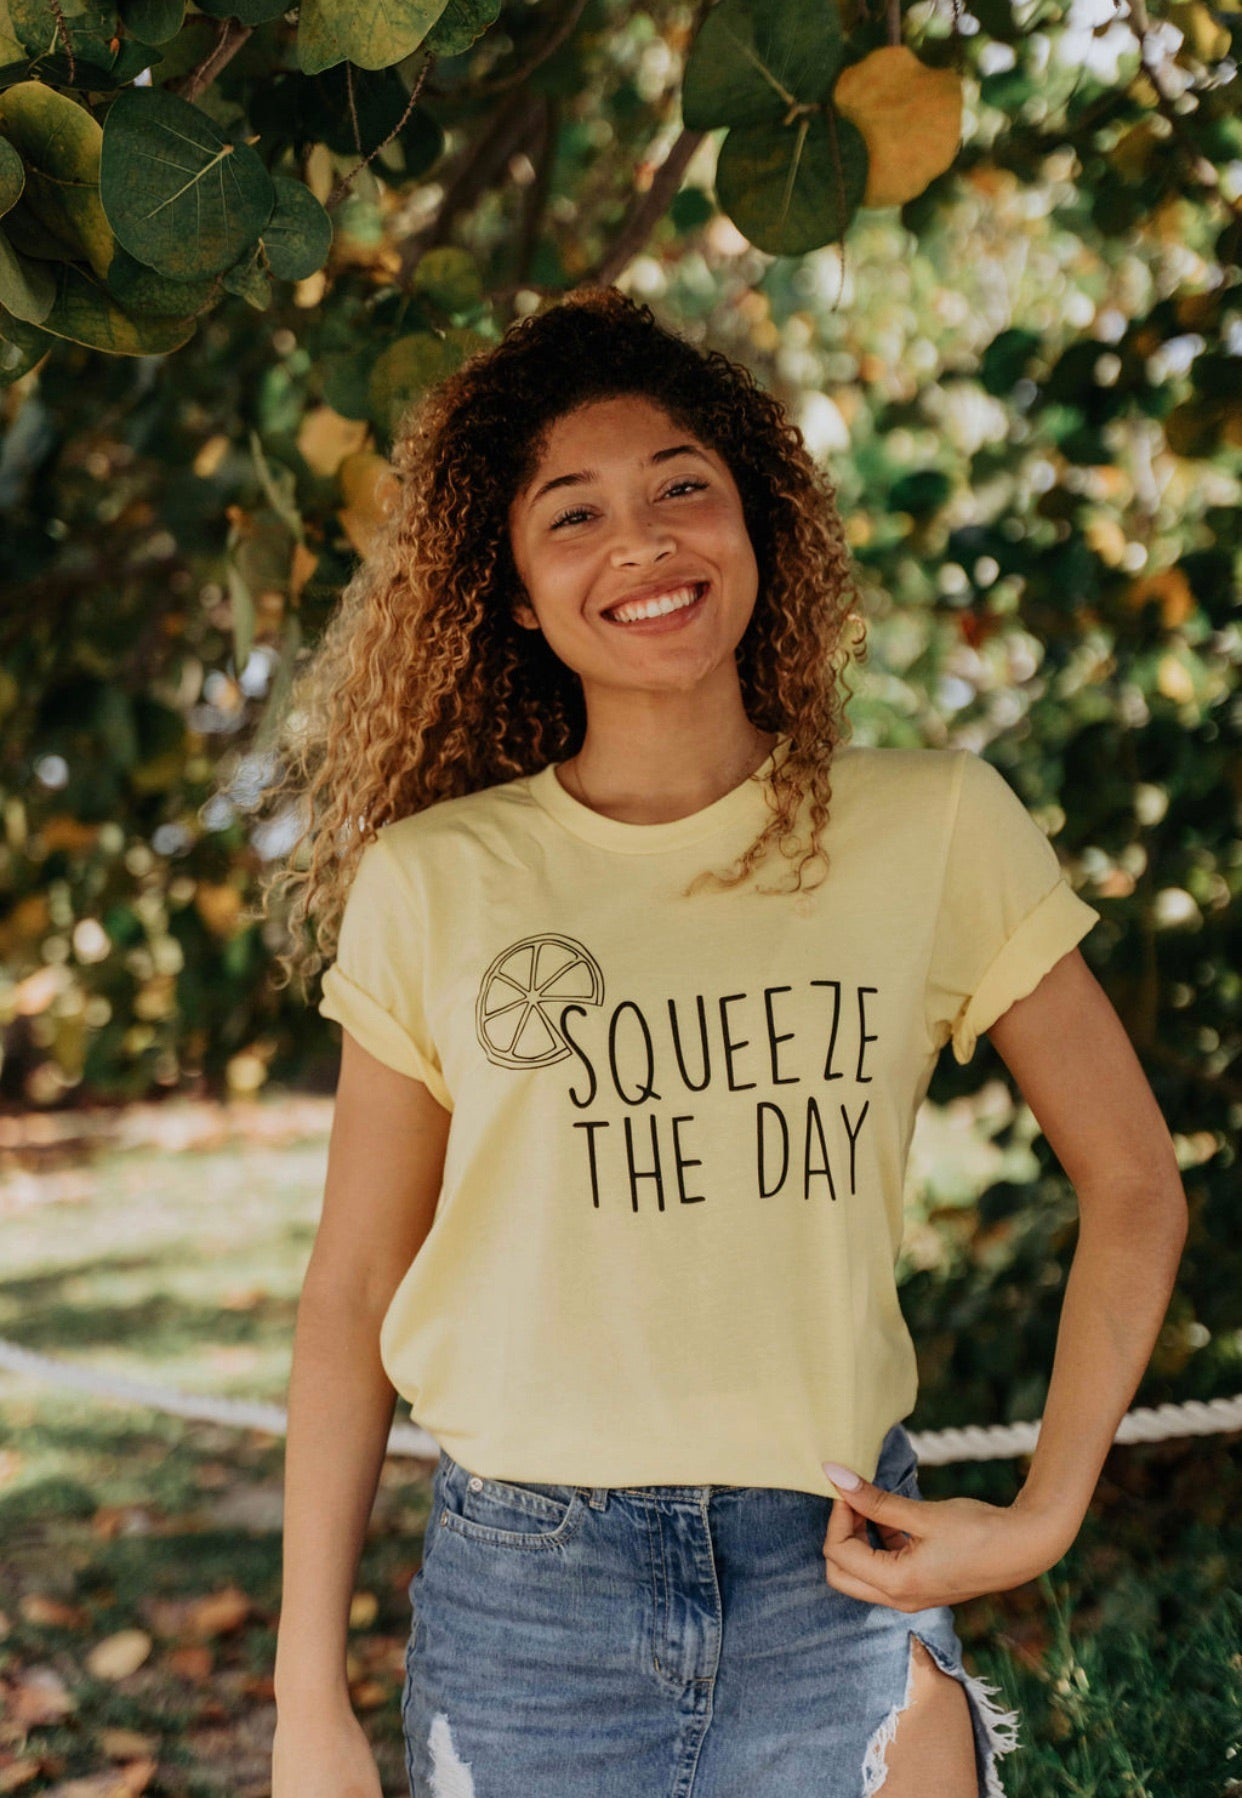 Squeeze The Day - Tshirt - Yellow - Mini Collection